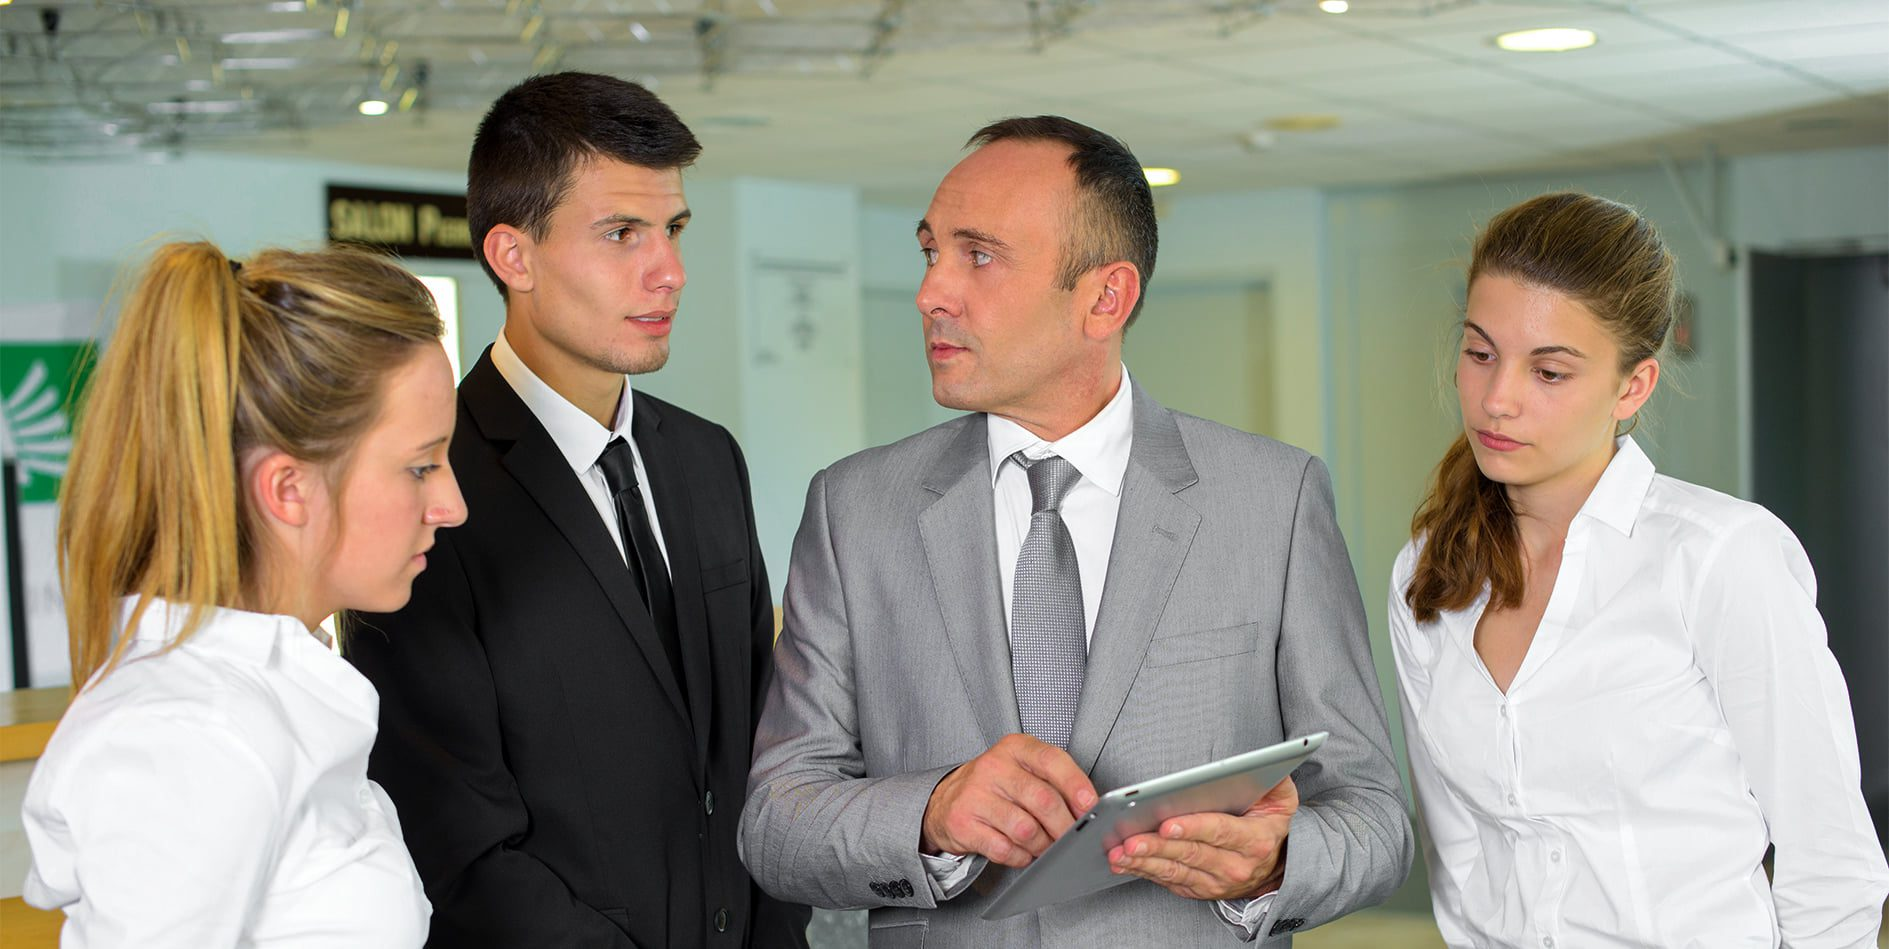 Swiss Master In Hospitality Management